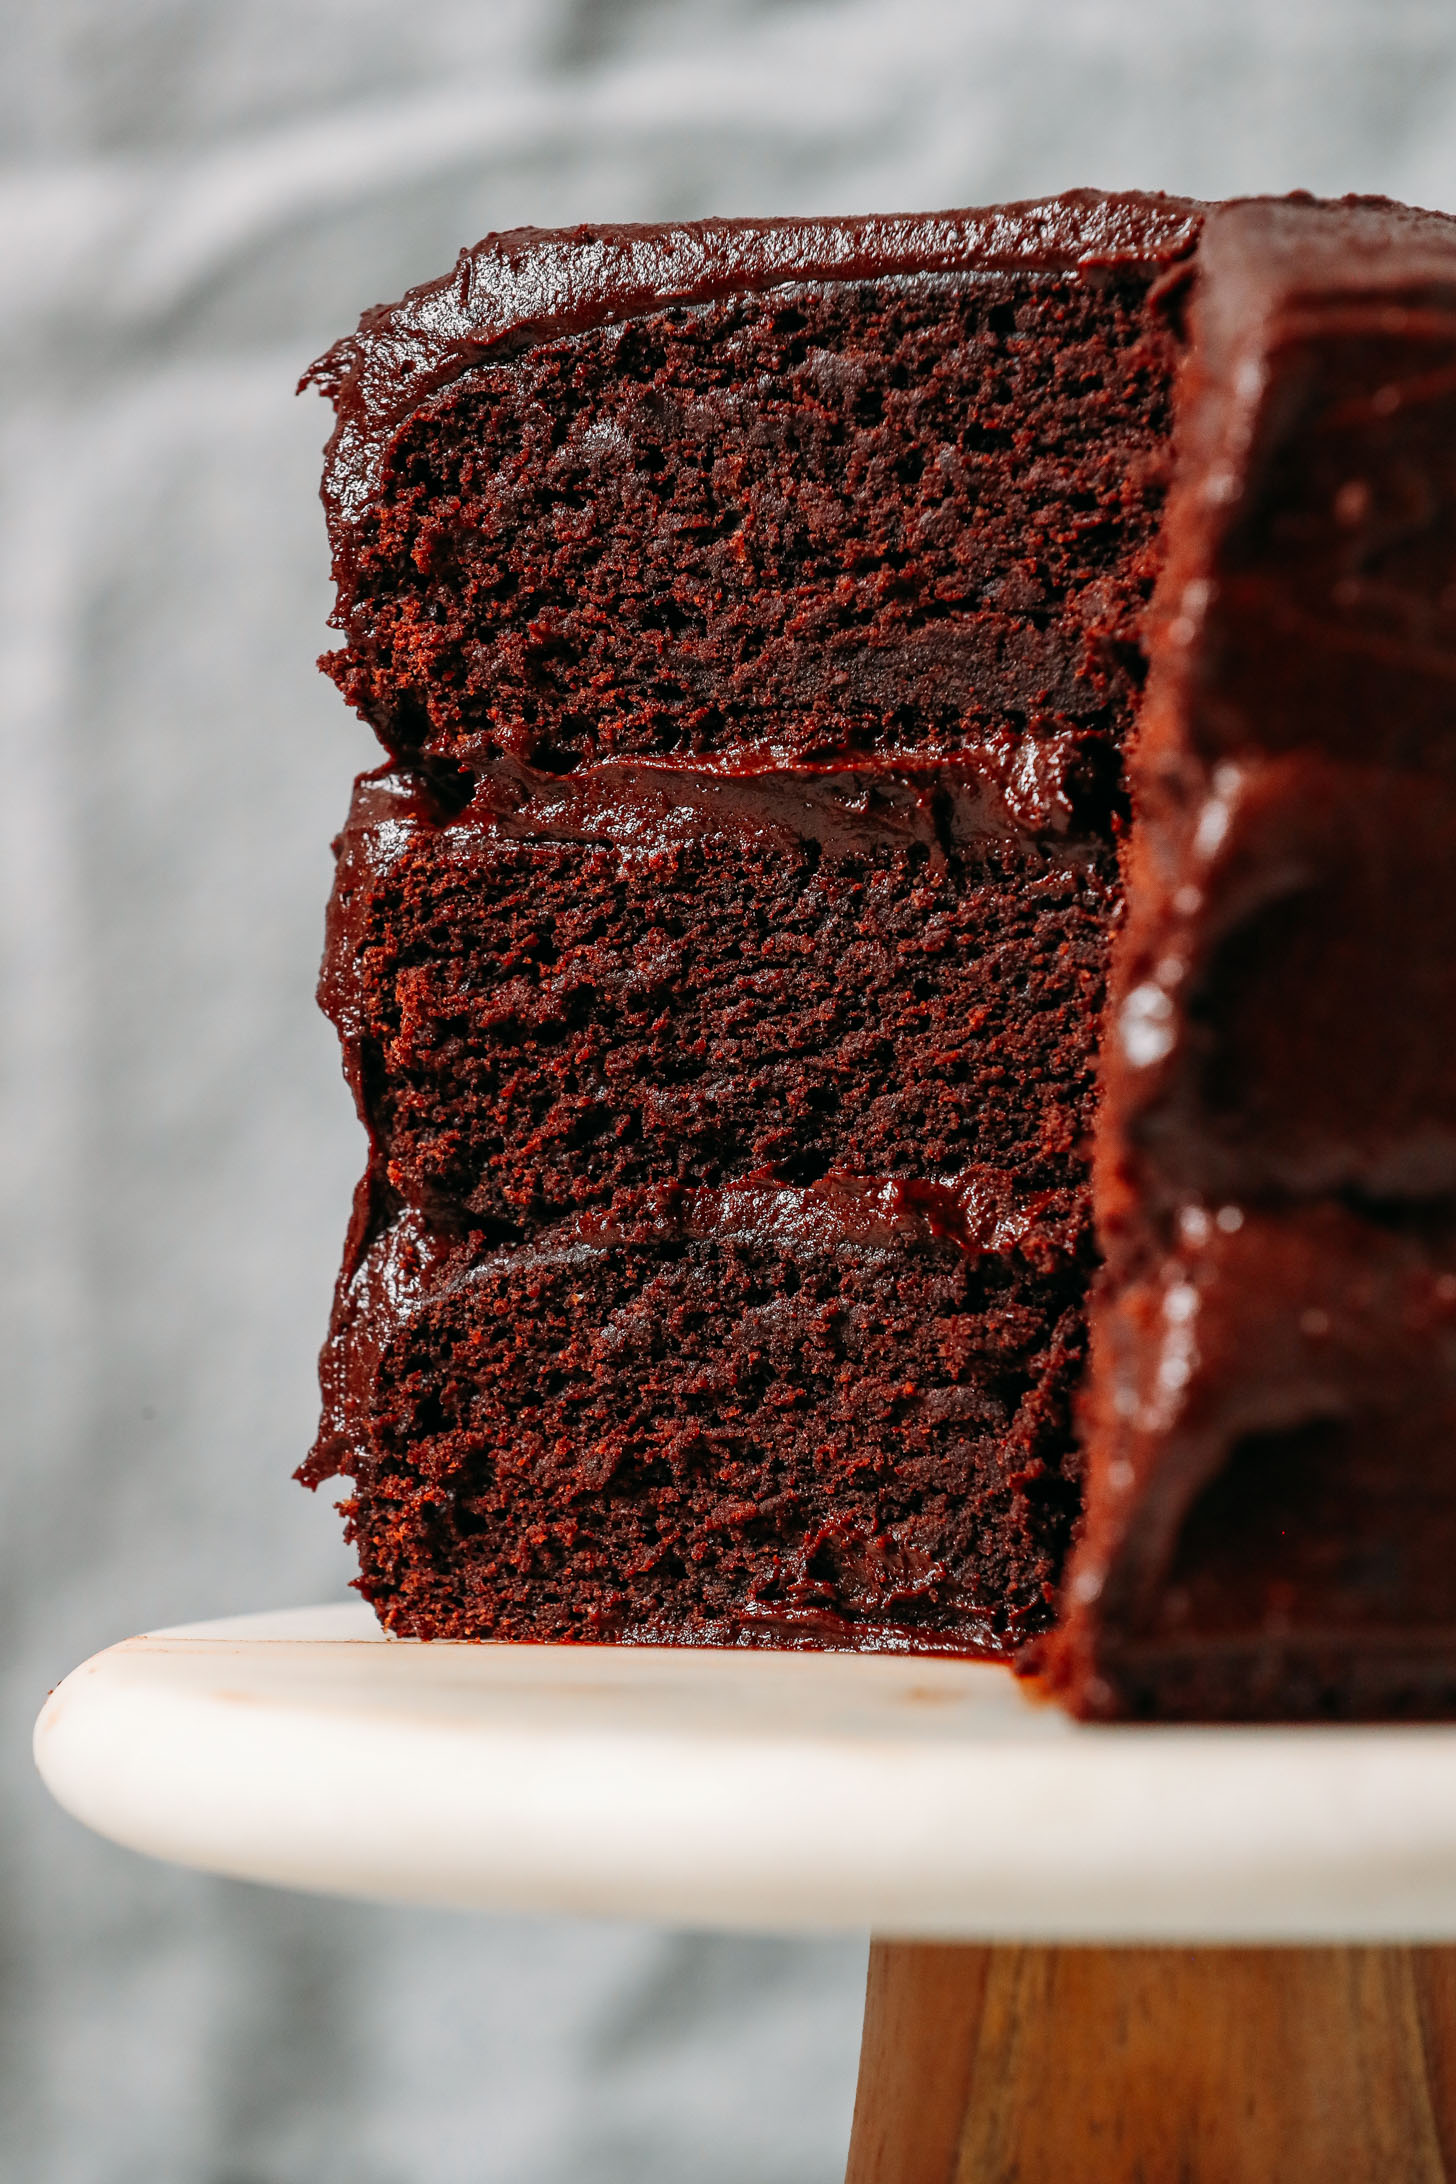 Close up shot of a slice of three layer Gluten Free Chocolate Cake with Vegan Chocolate Frosting